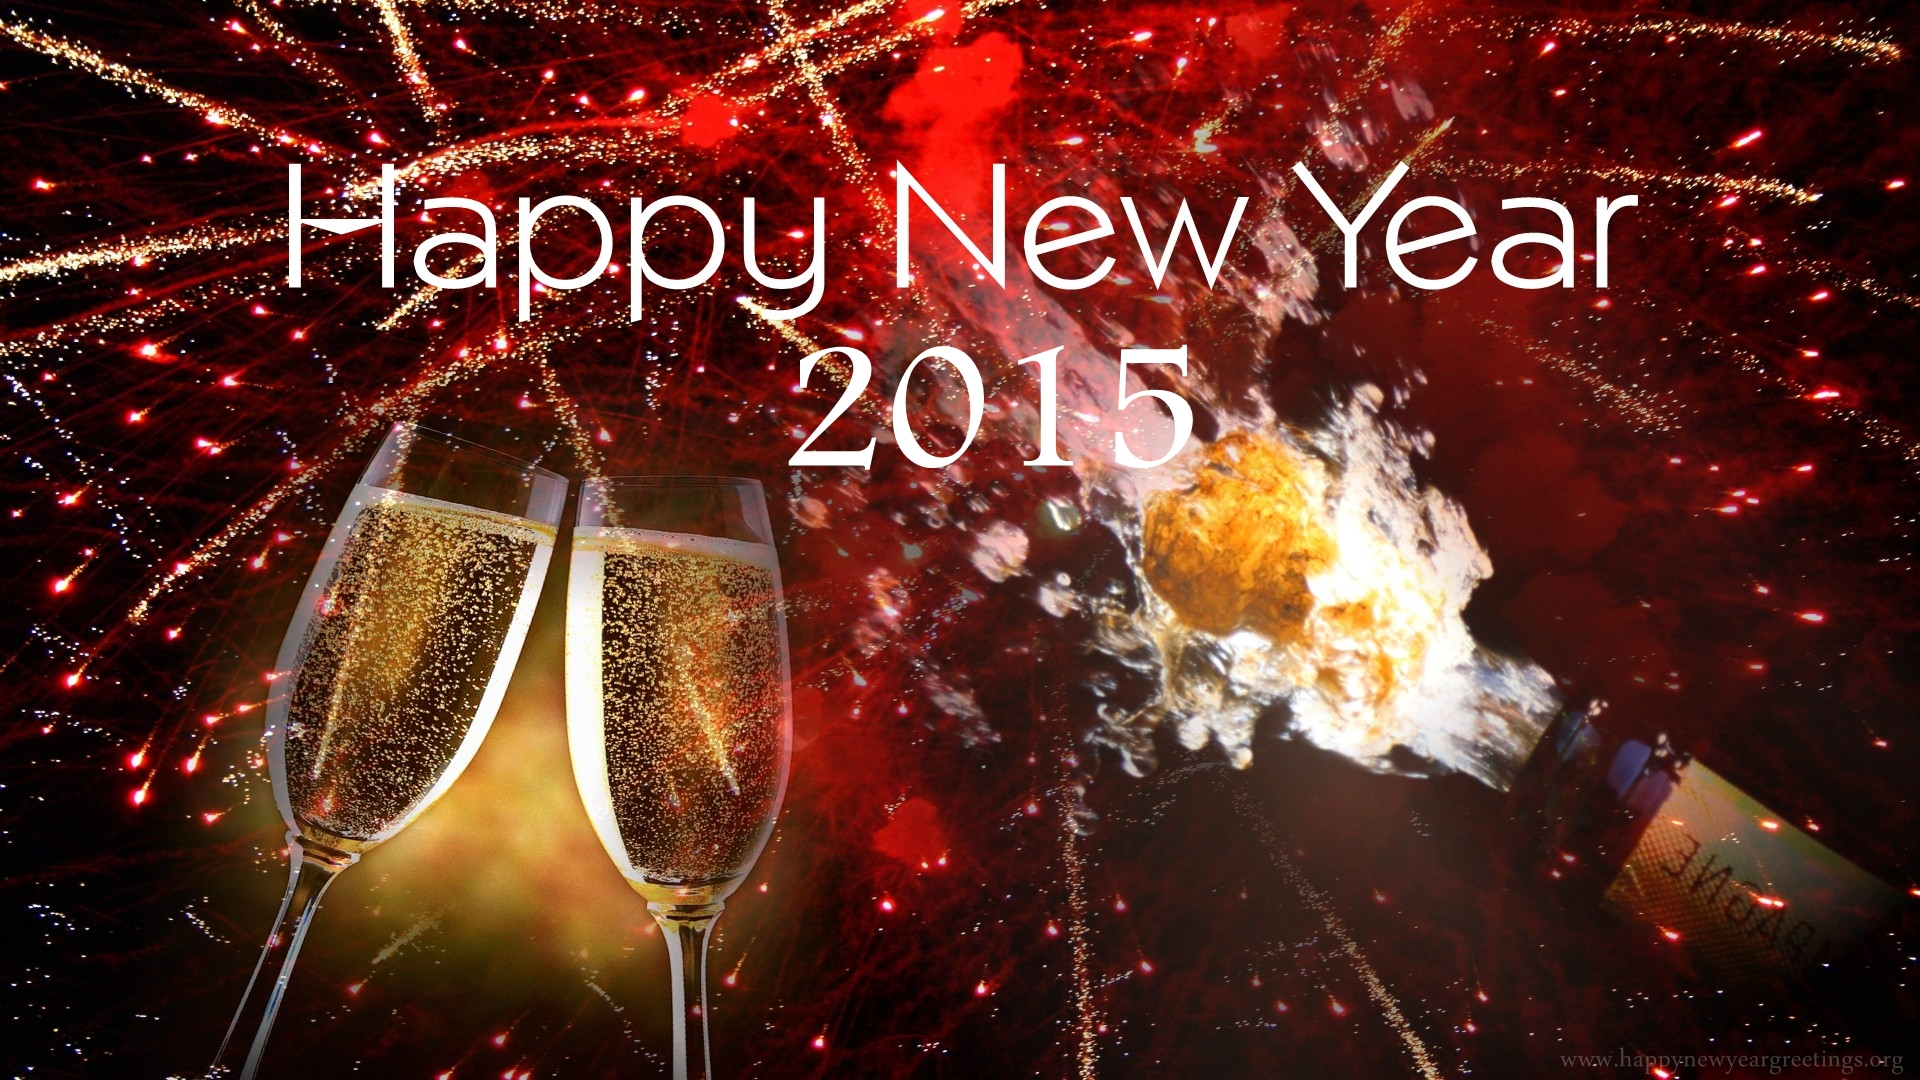 50 Happy New Year Wallpapers 2015 for Desktop 1920x1080